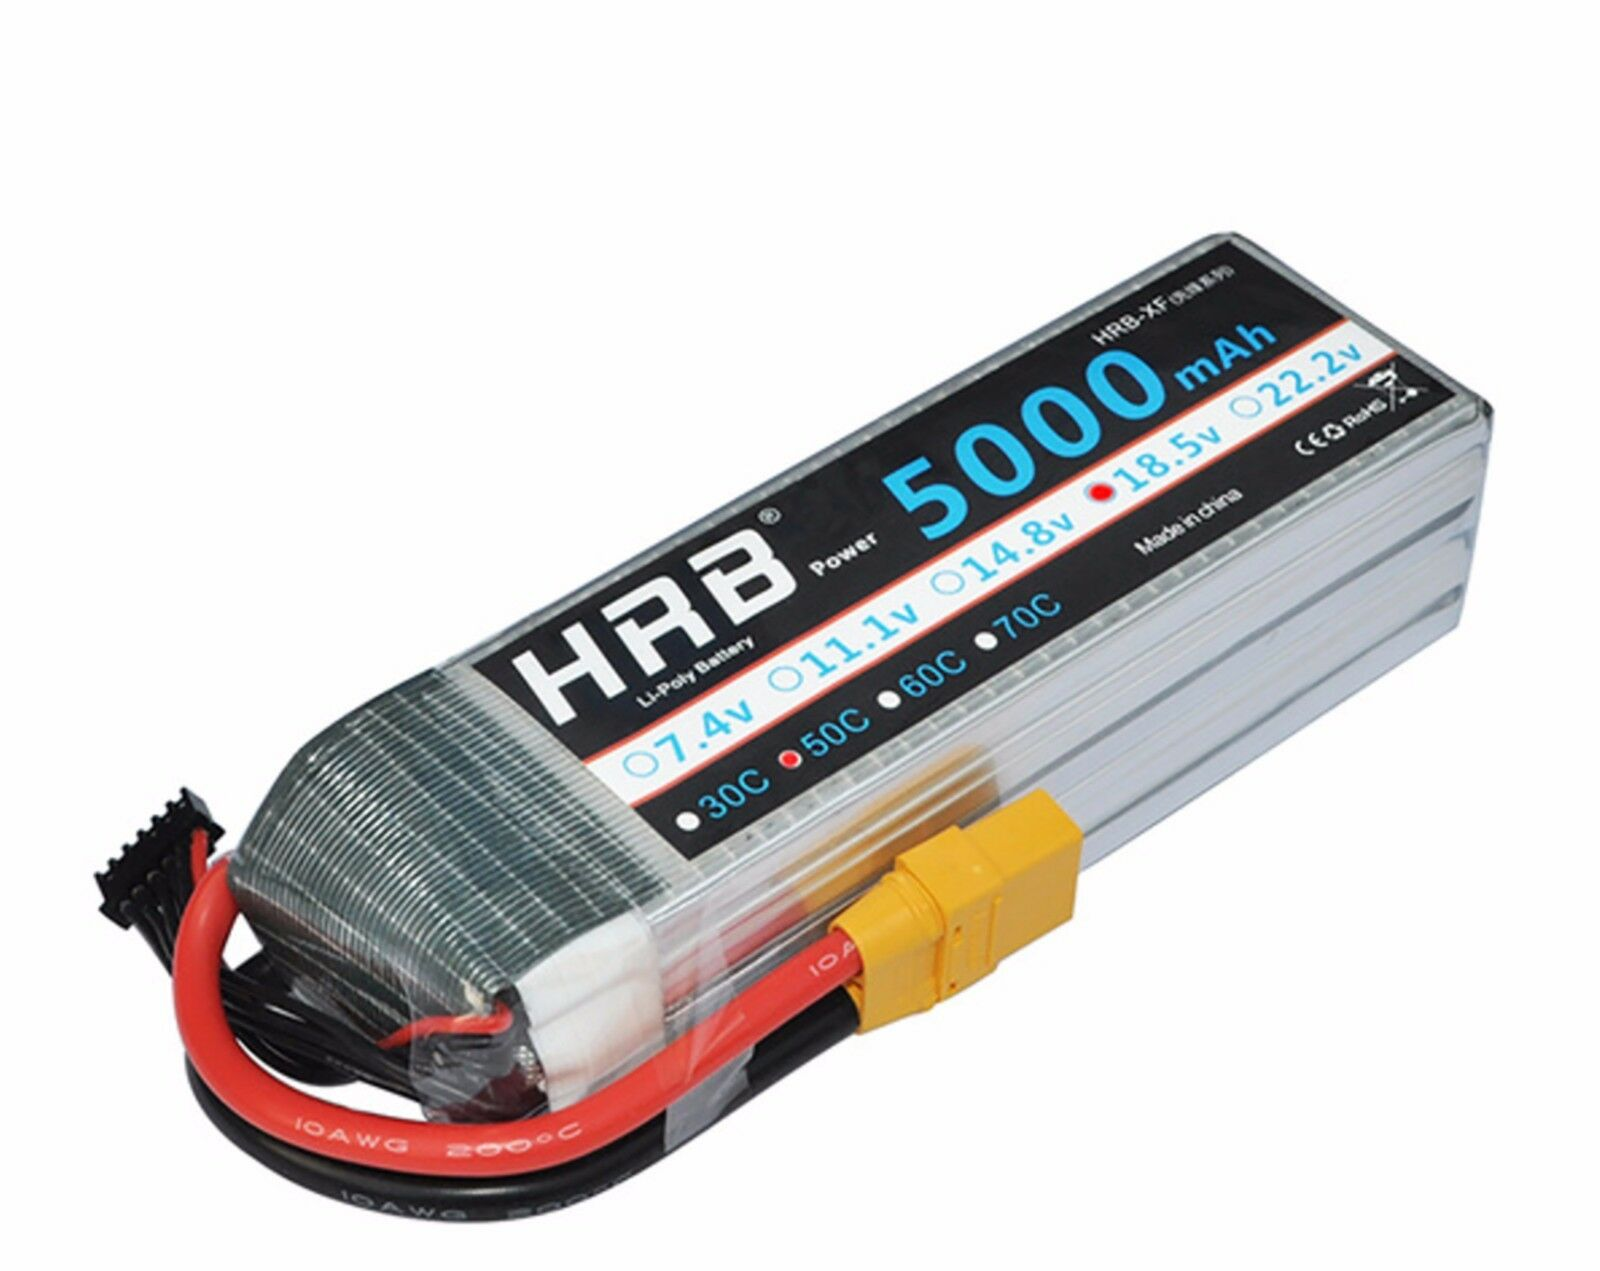 HRB Drone AKKU 18.5V 5000mAh 50C Max 100C 5S Battery Lipo Bateria For Helicopter